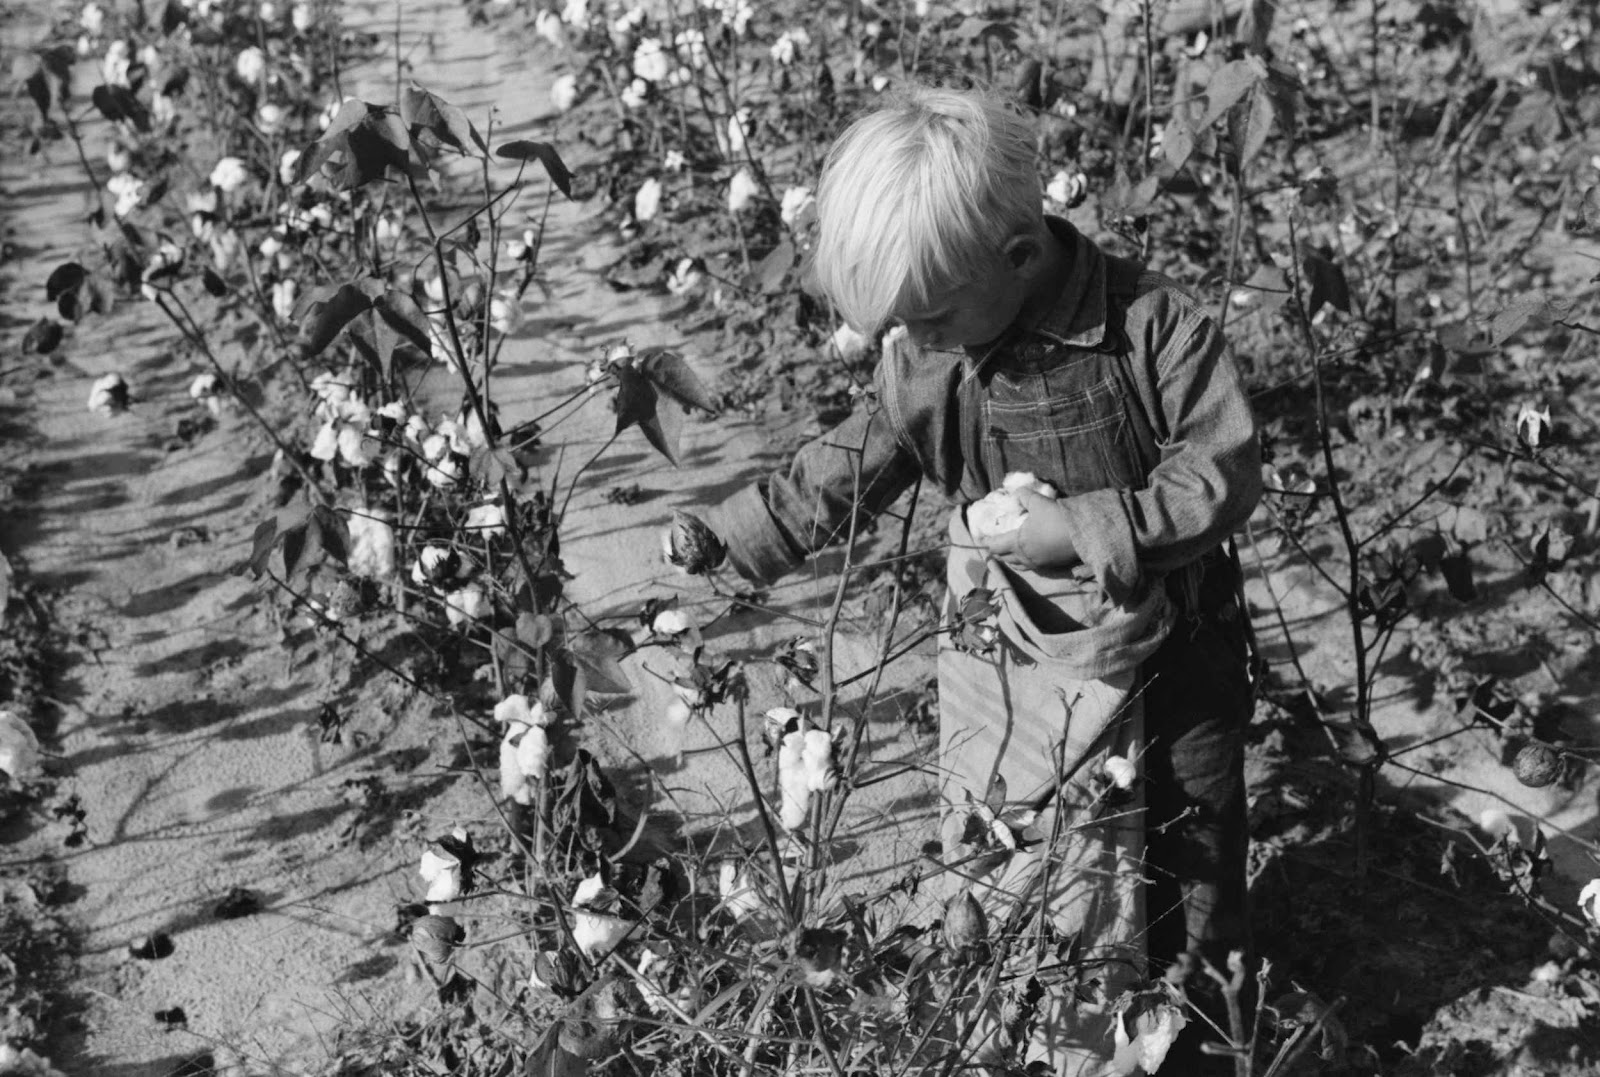 picking cotton I have wonderful memories of picking cotton in the deep south these memories were rekindled after buying a sprig of cotton.